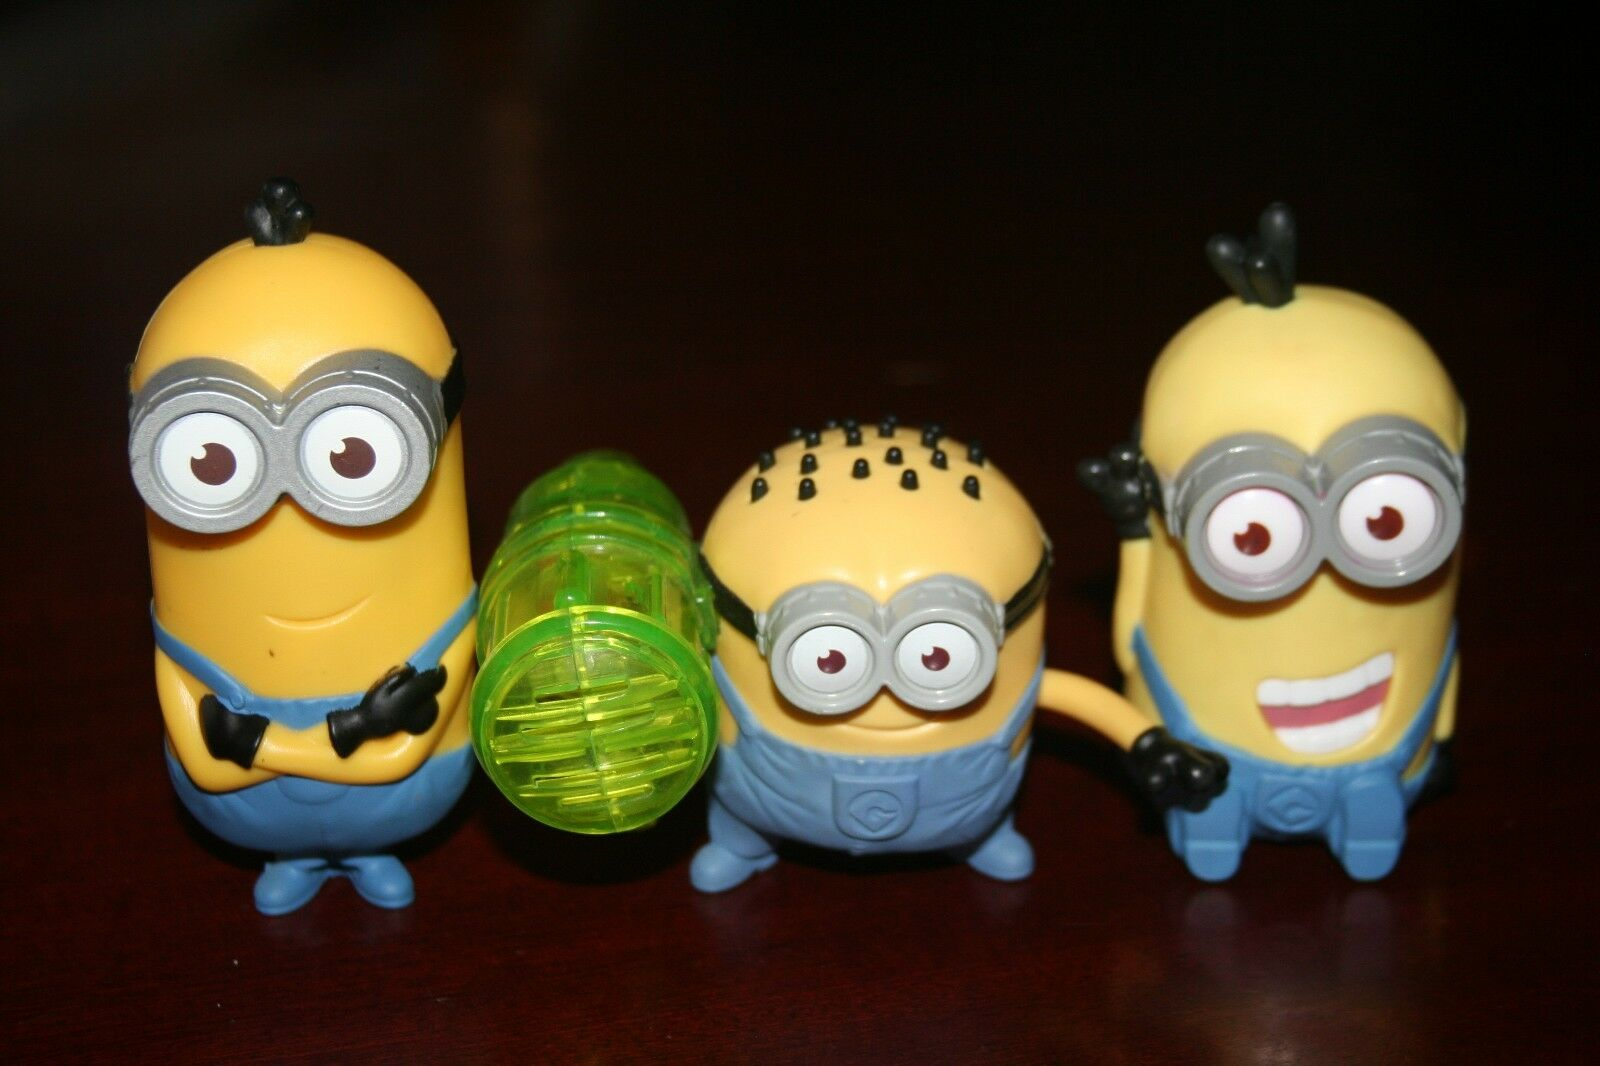 Lot 3 Mcdonalds Minion Action Figure Despicable Me 2 Happy Meal Toys 1 Of 6 See More